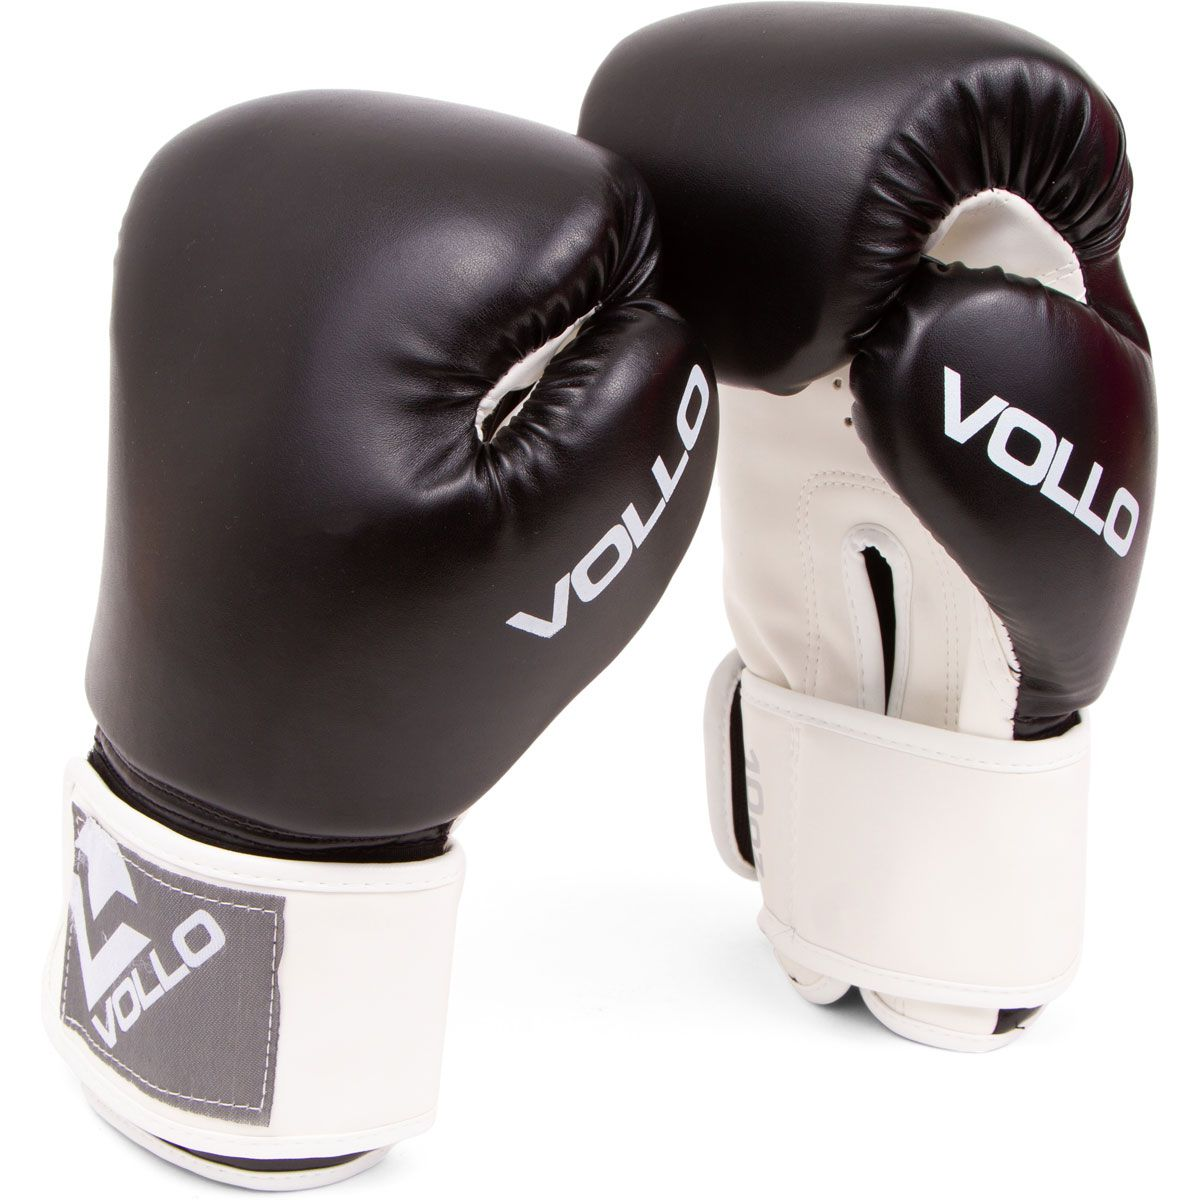 Kit Luvas de Boxe/Thai + Bandagem + Bucal - Preto - 10 Oz - Vollo